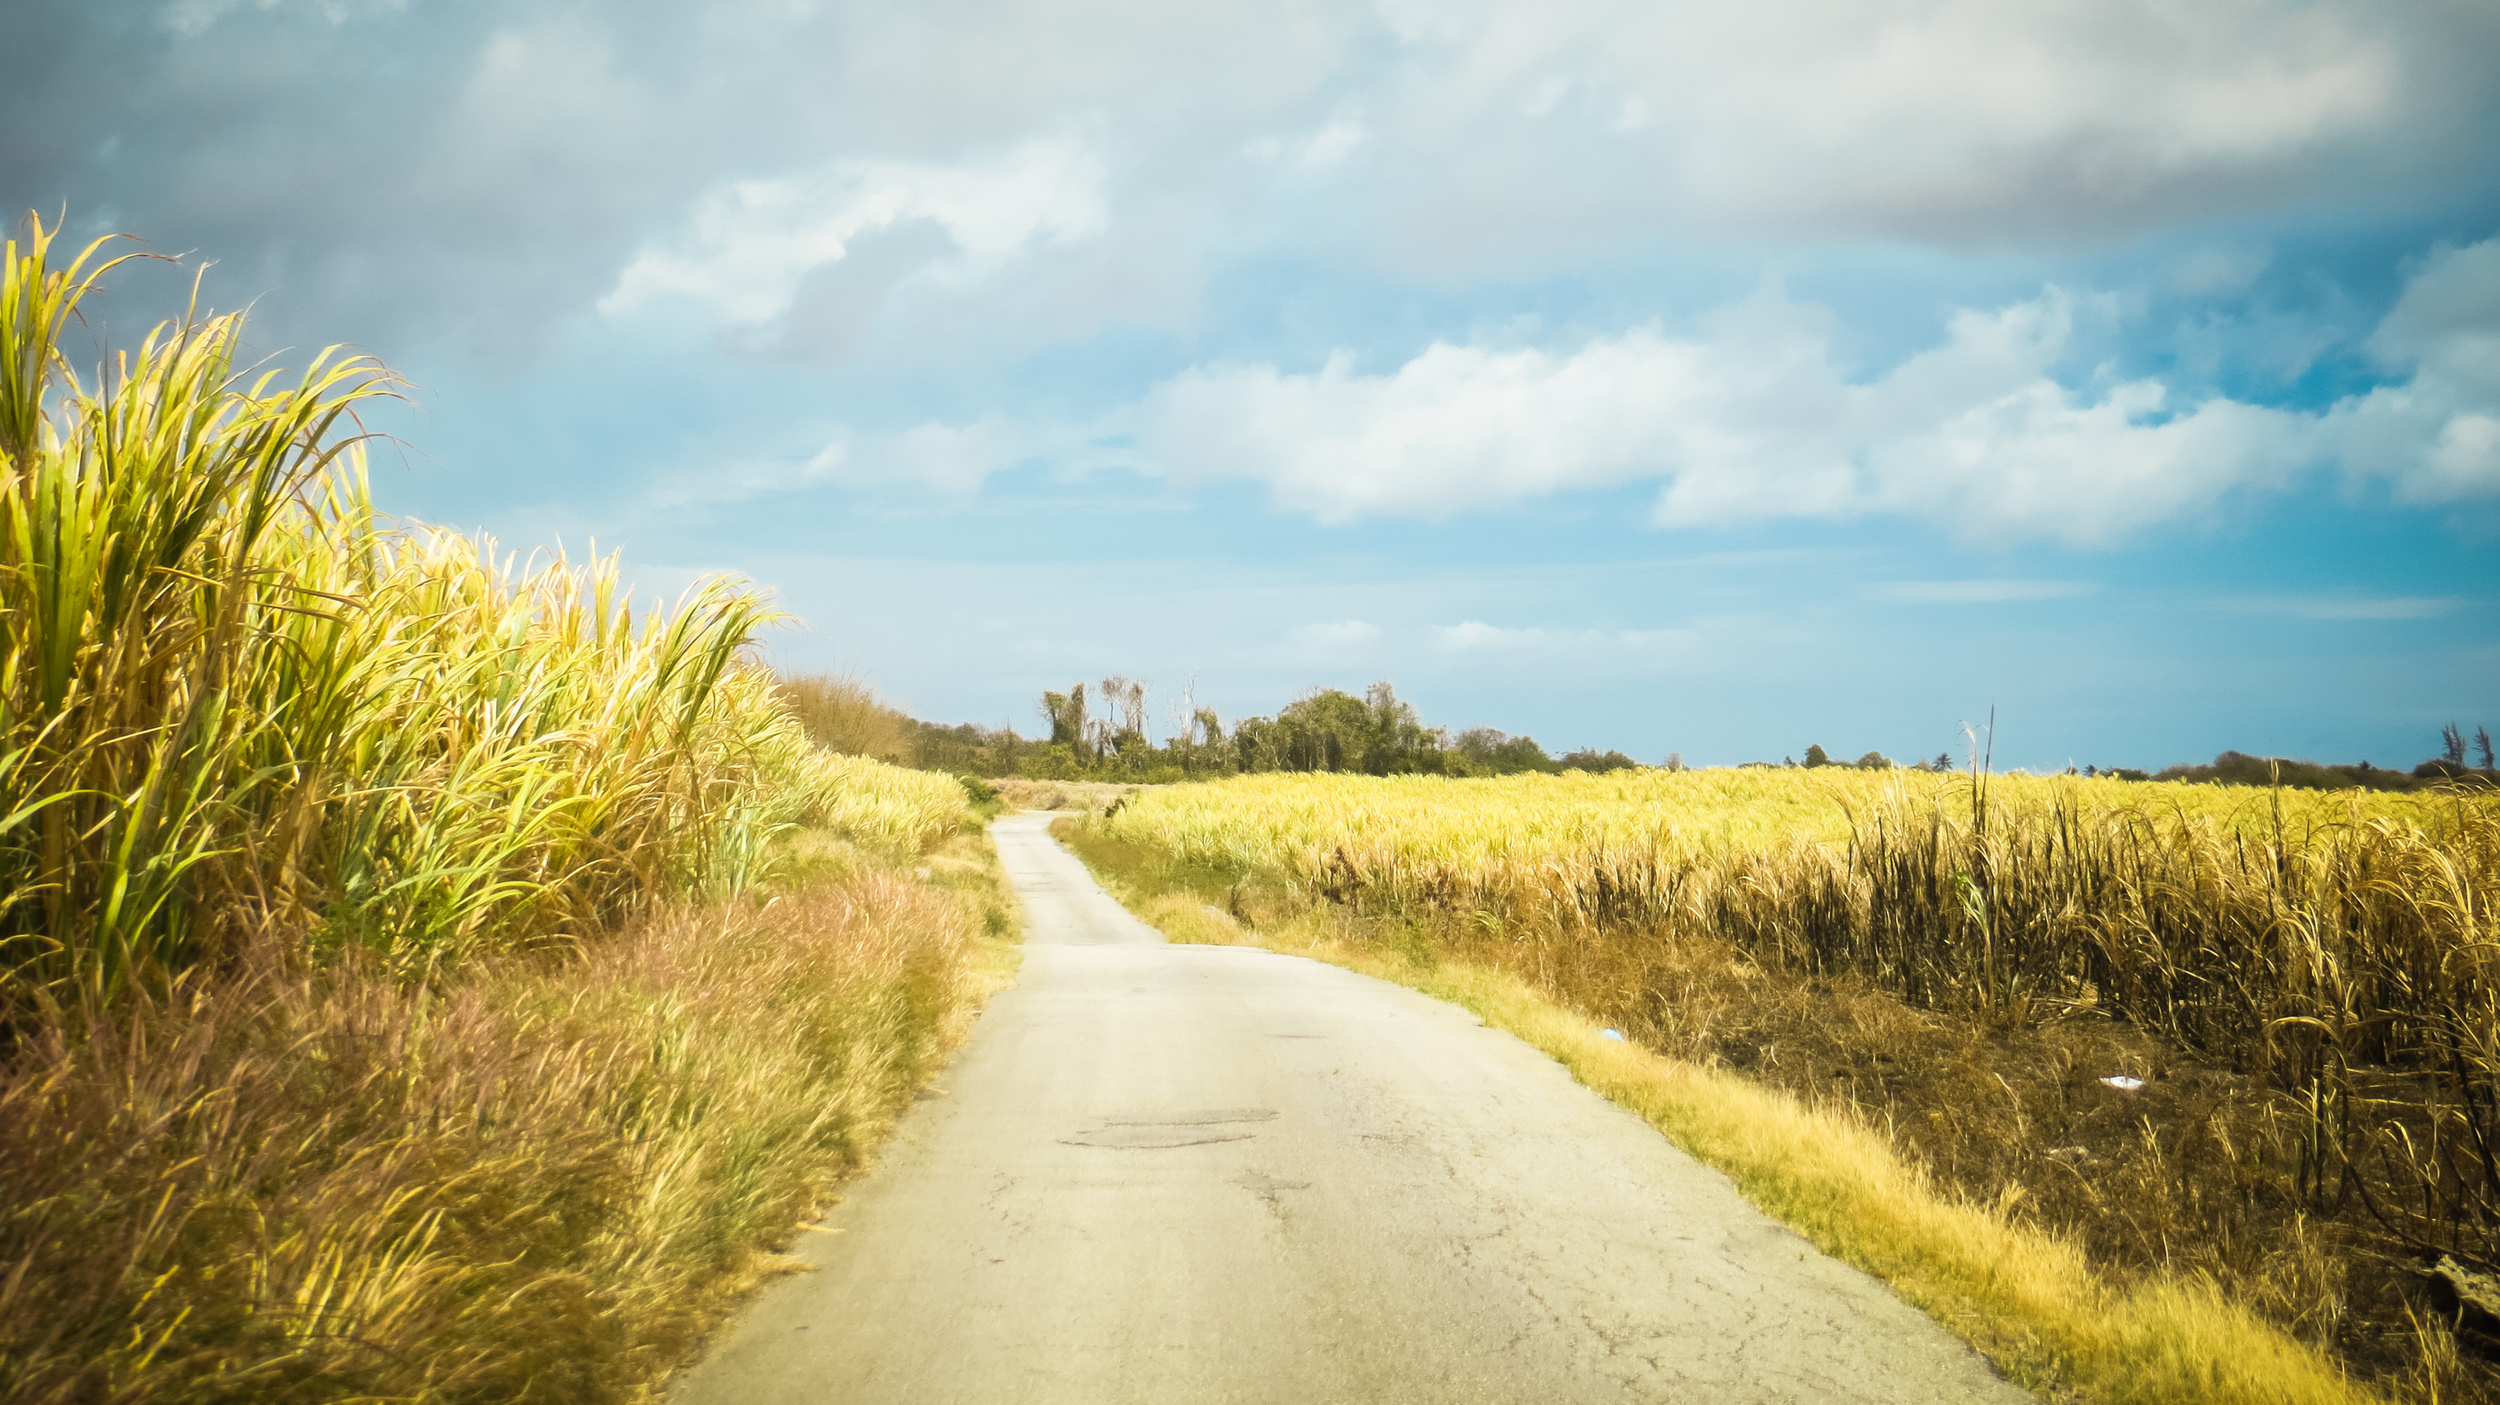 Driving through narrow back roads in the cane fields